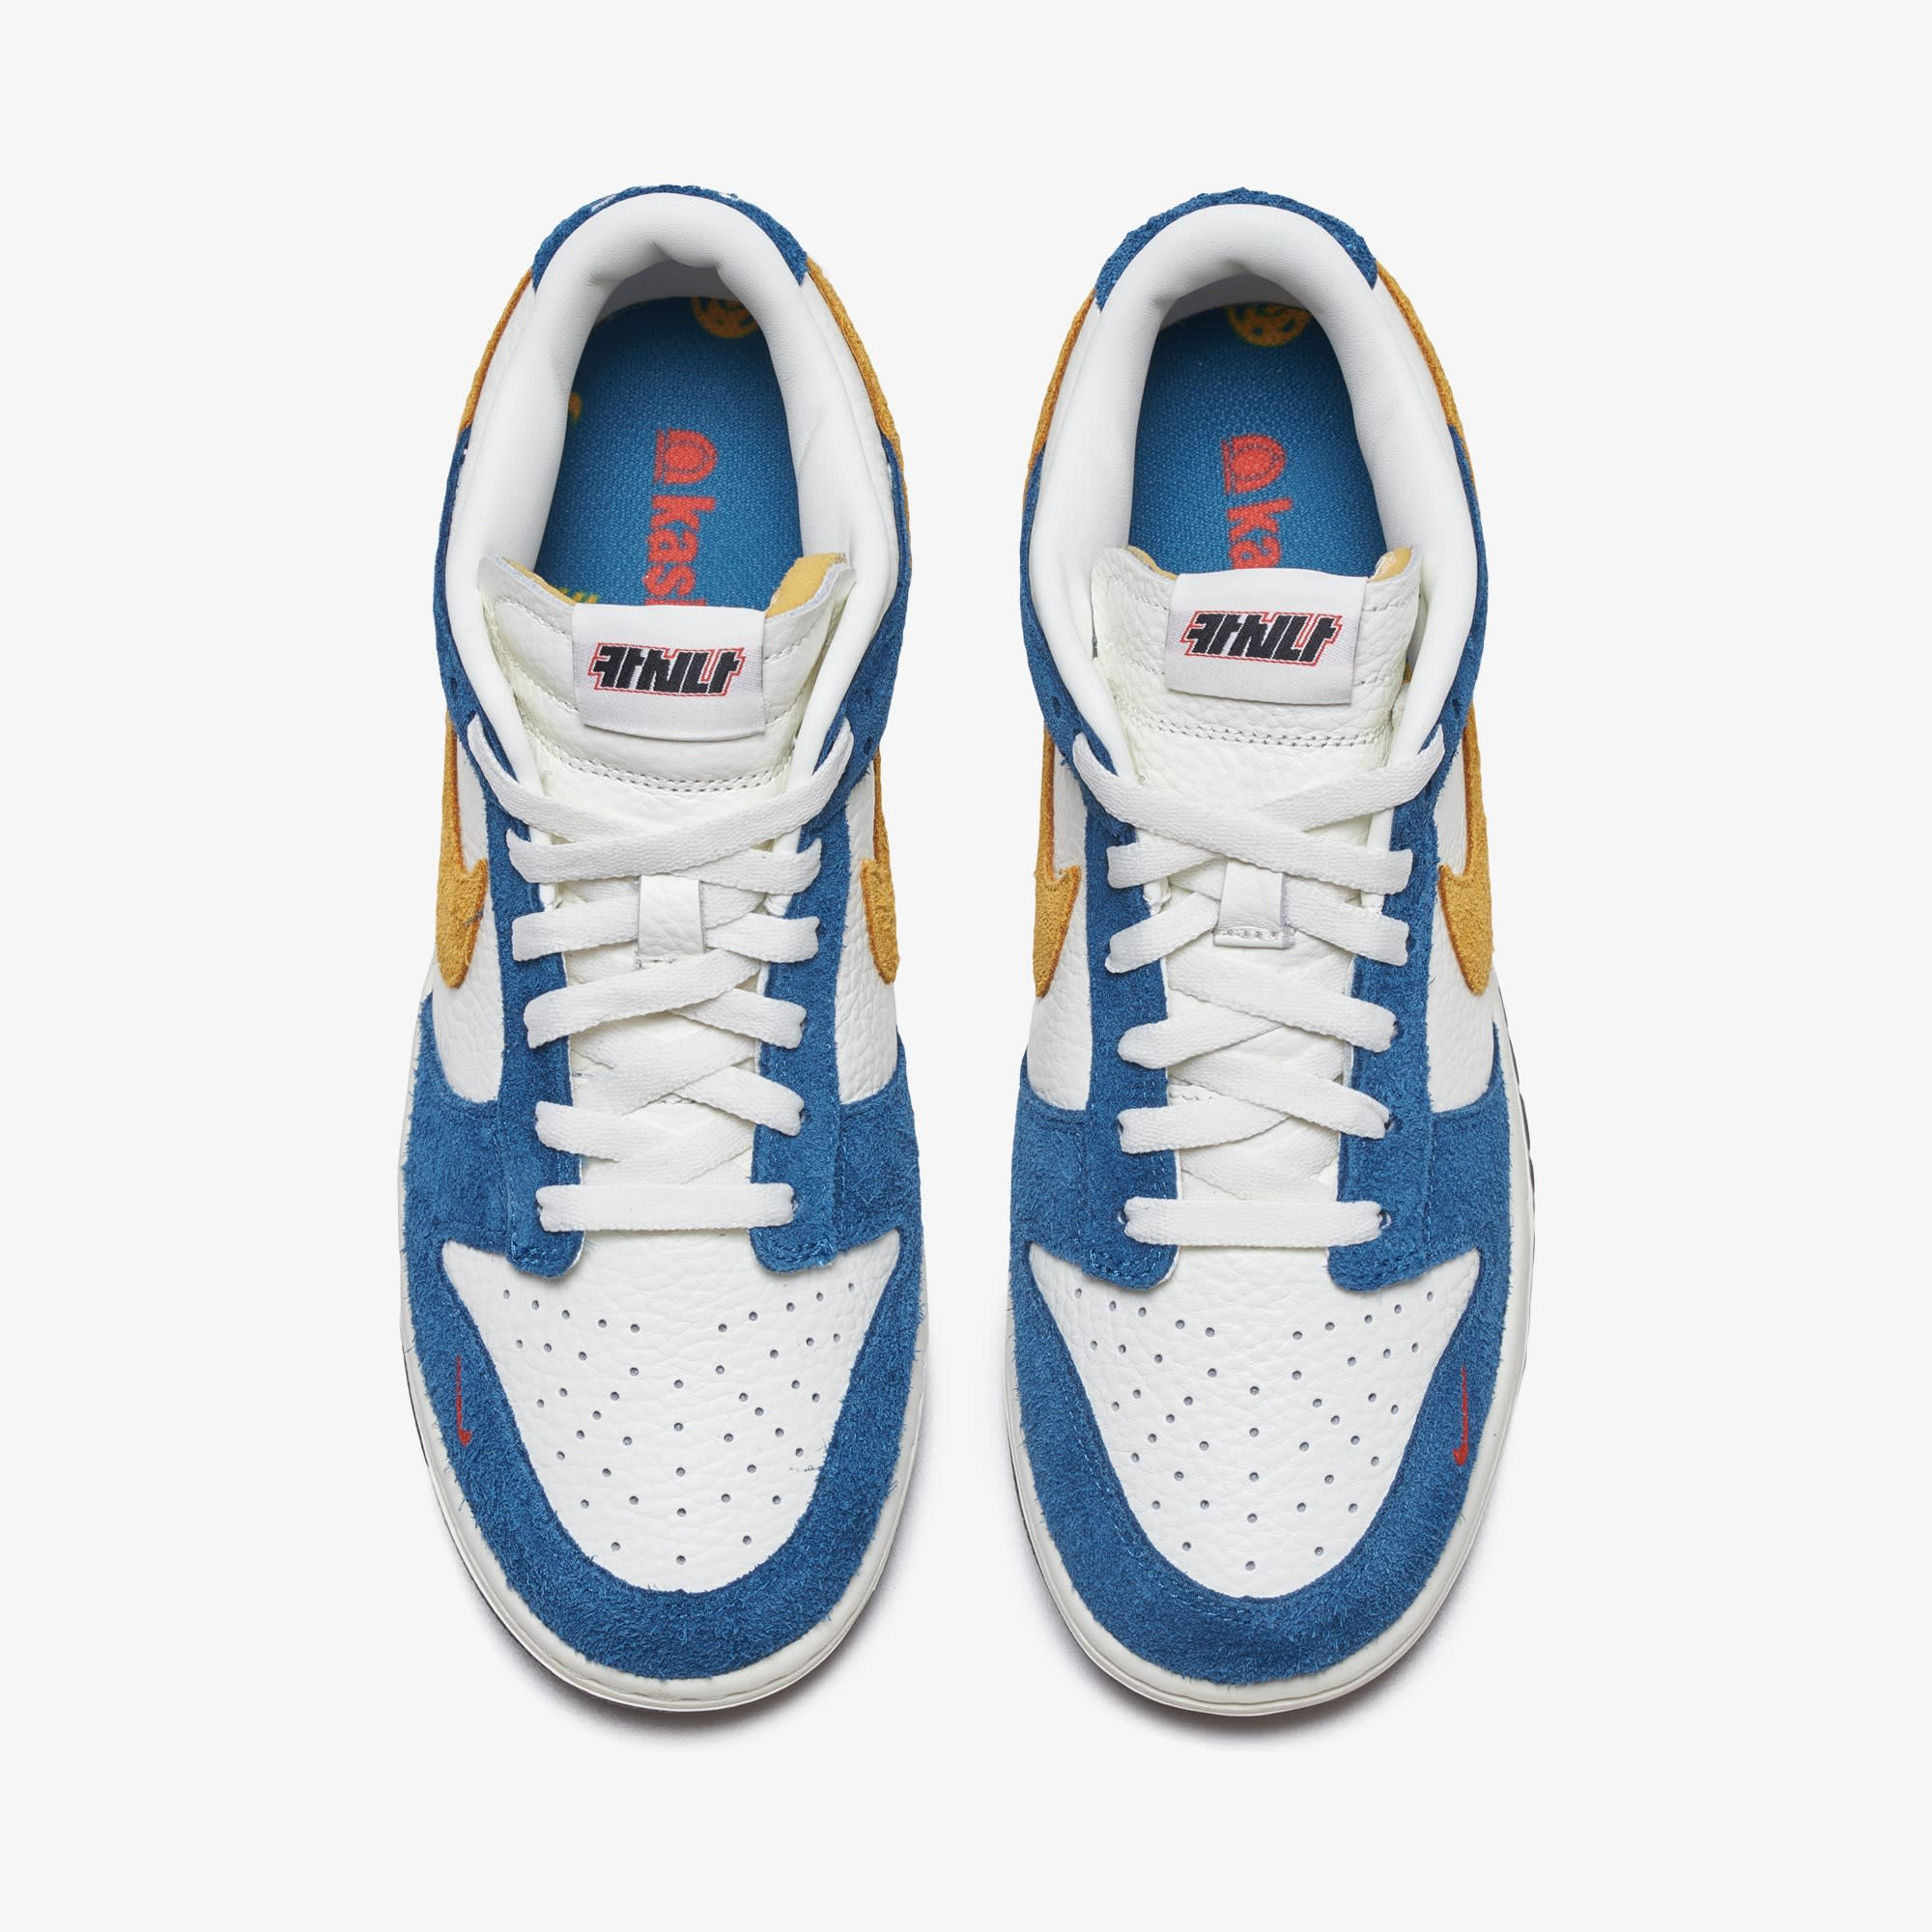 Kasina x Nike Dunk Low 'Industrial Blue' CZ6501-100 Top